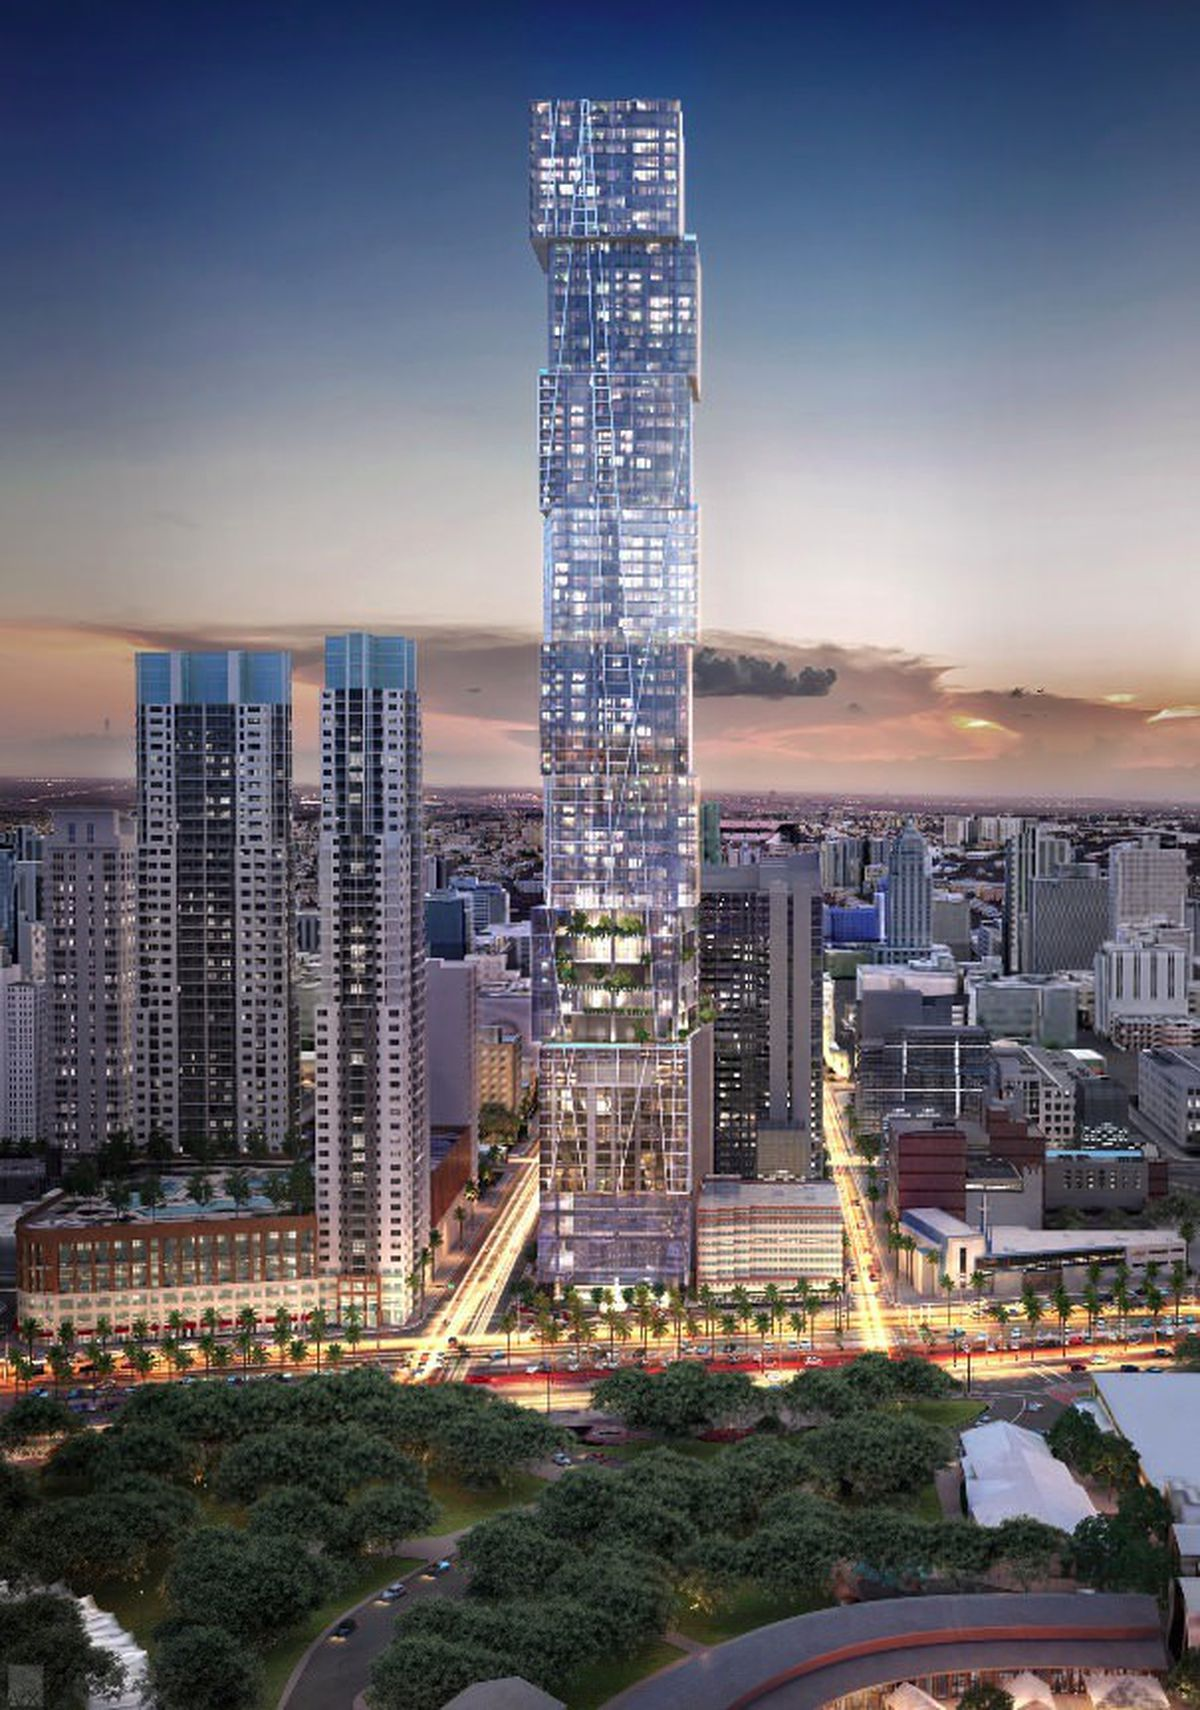 Five Star Auto Sales >> Miami's tallest planned tower unveils new renderings, design - Curbed Miami